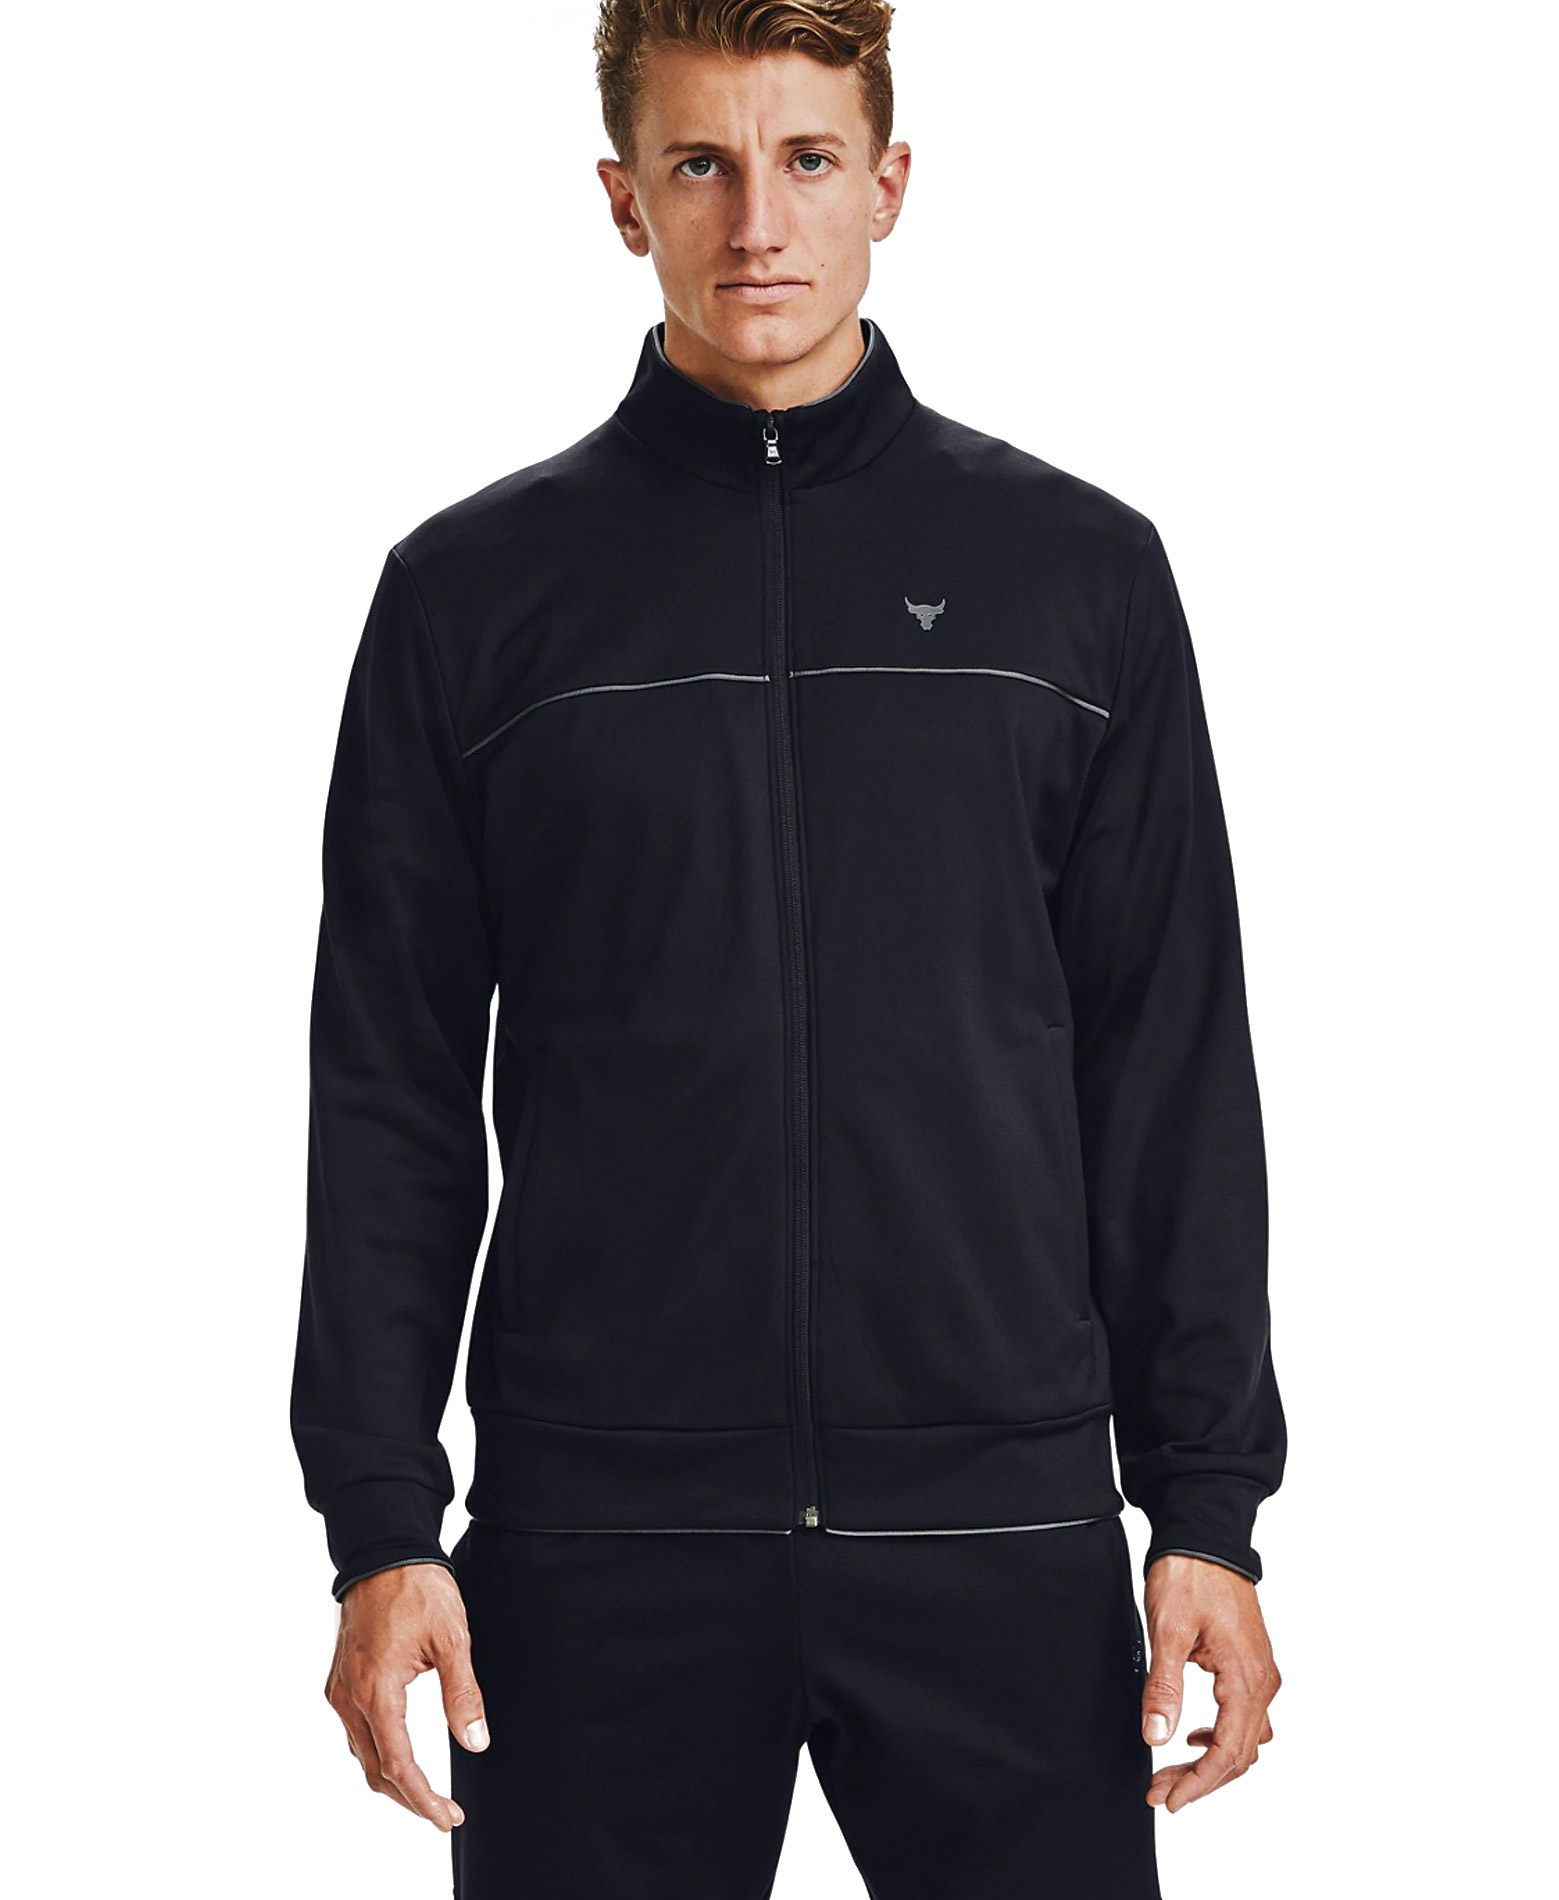 UNDER ARMOUR PJT ROCK KNIT TRACK JKT LONGSLEEVE 1357199-001 Μαύρο